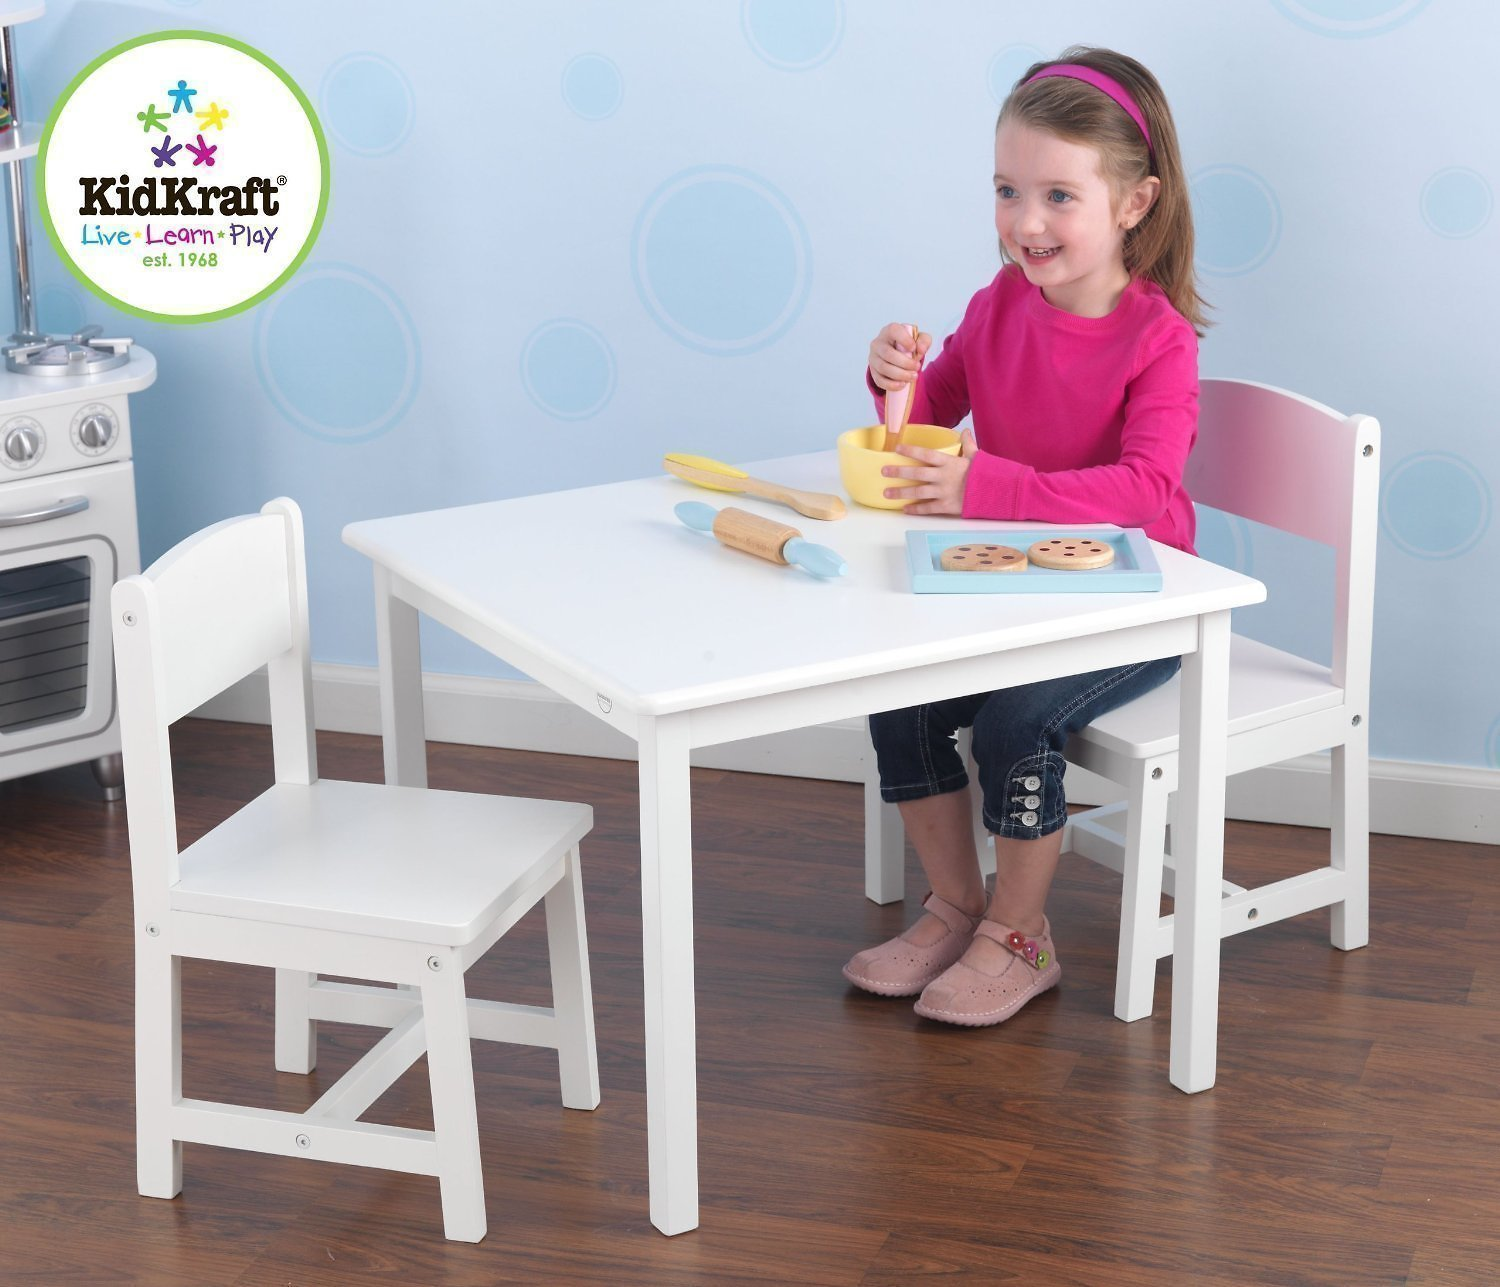 Amazon: Kidkraft Aspen Table & Chair Set $53 | The CentsAble Shoppin